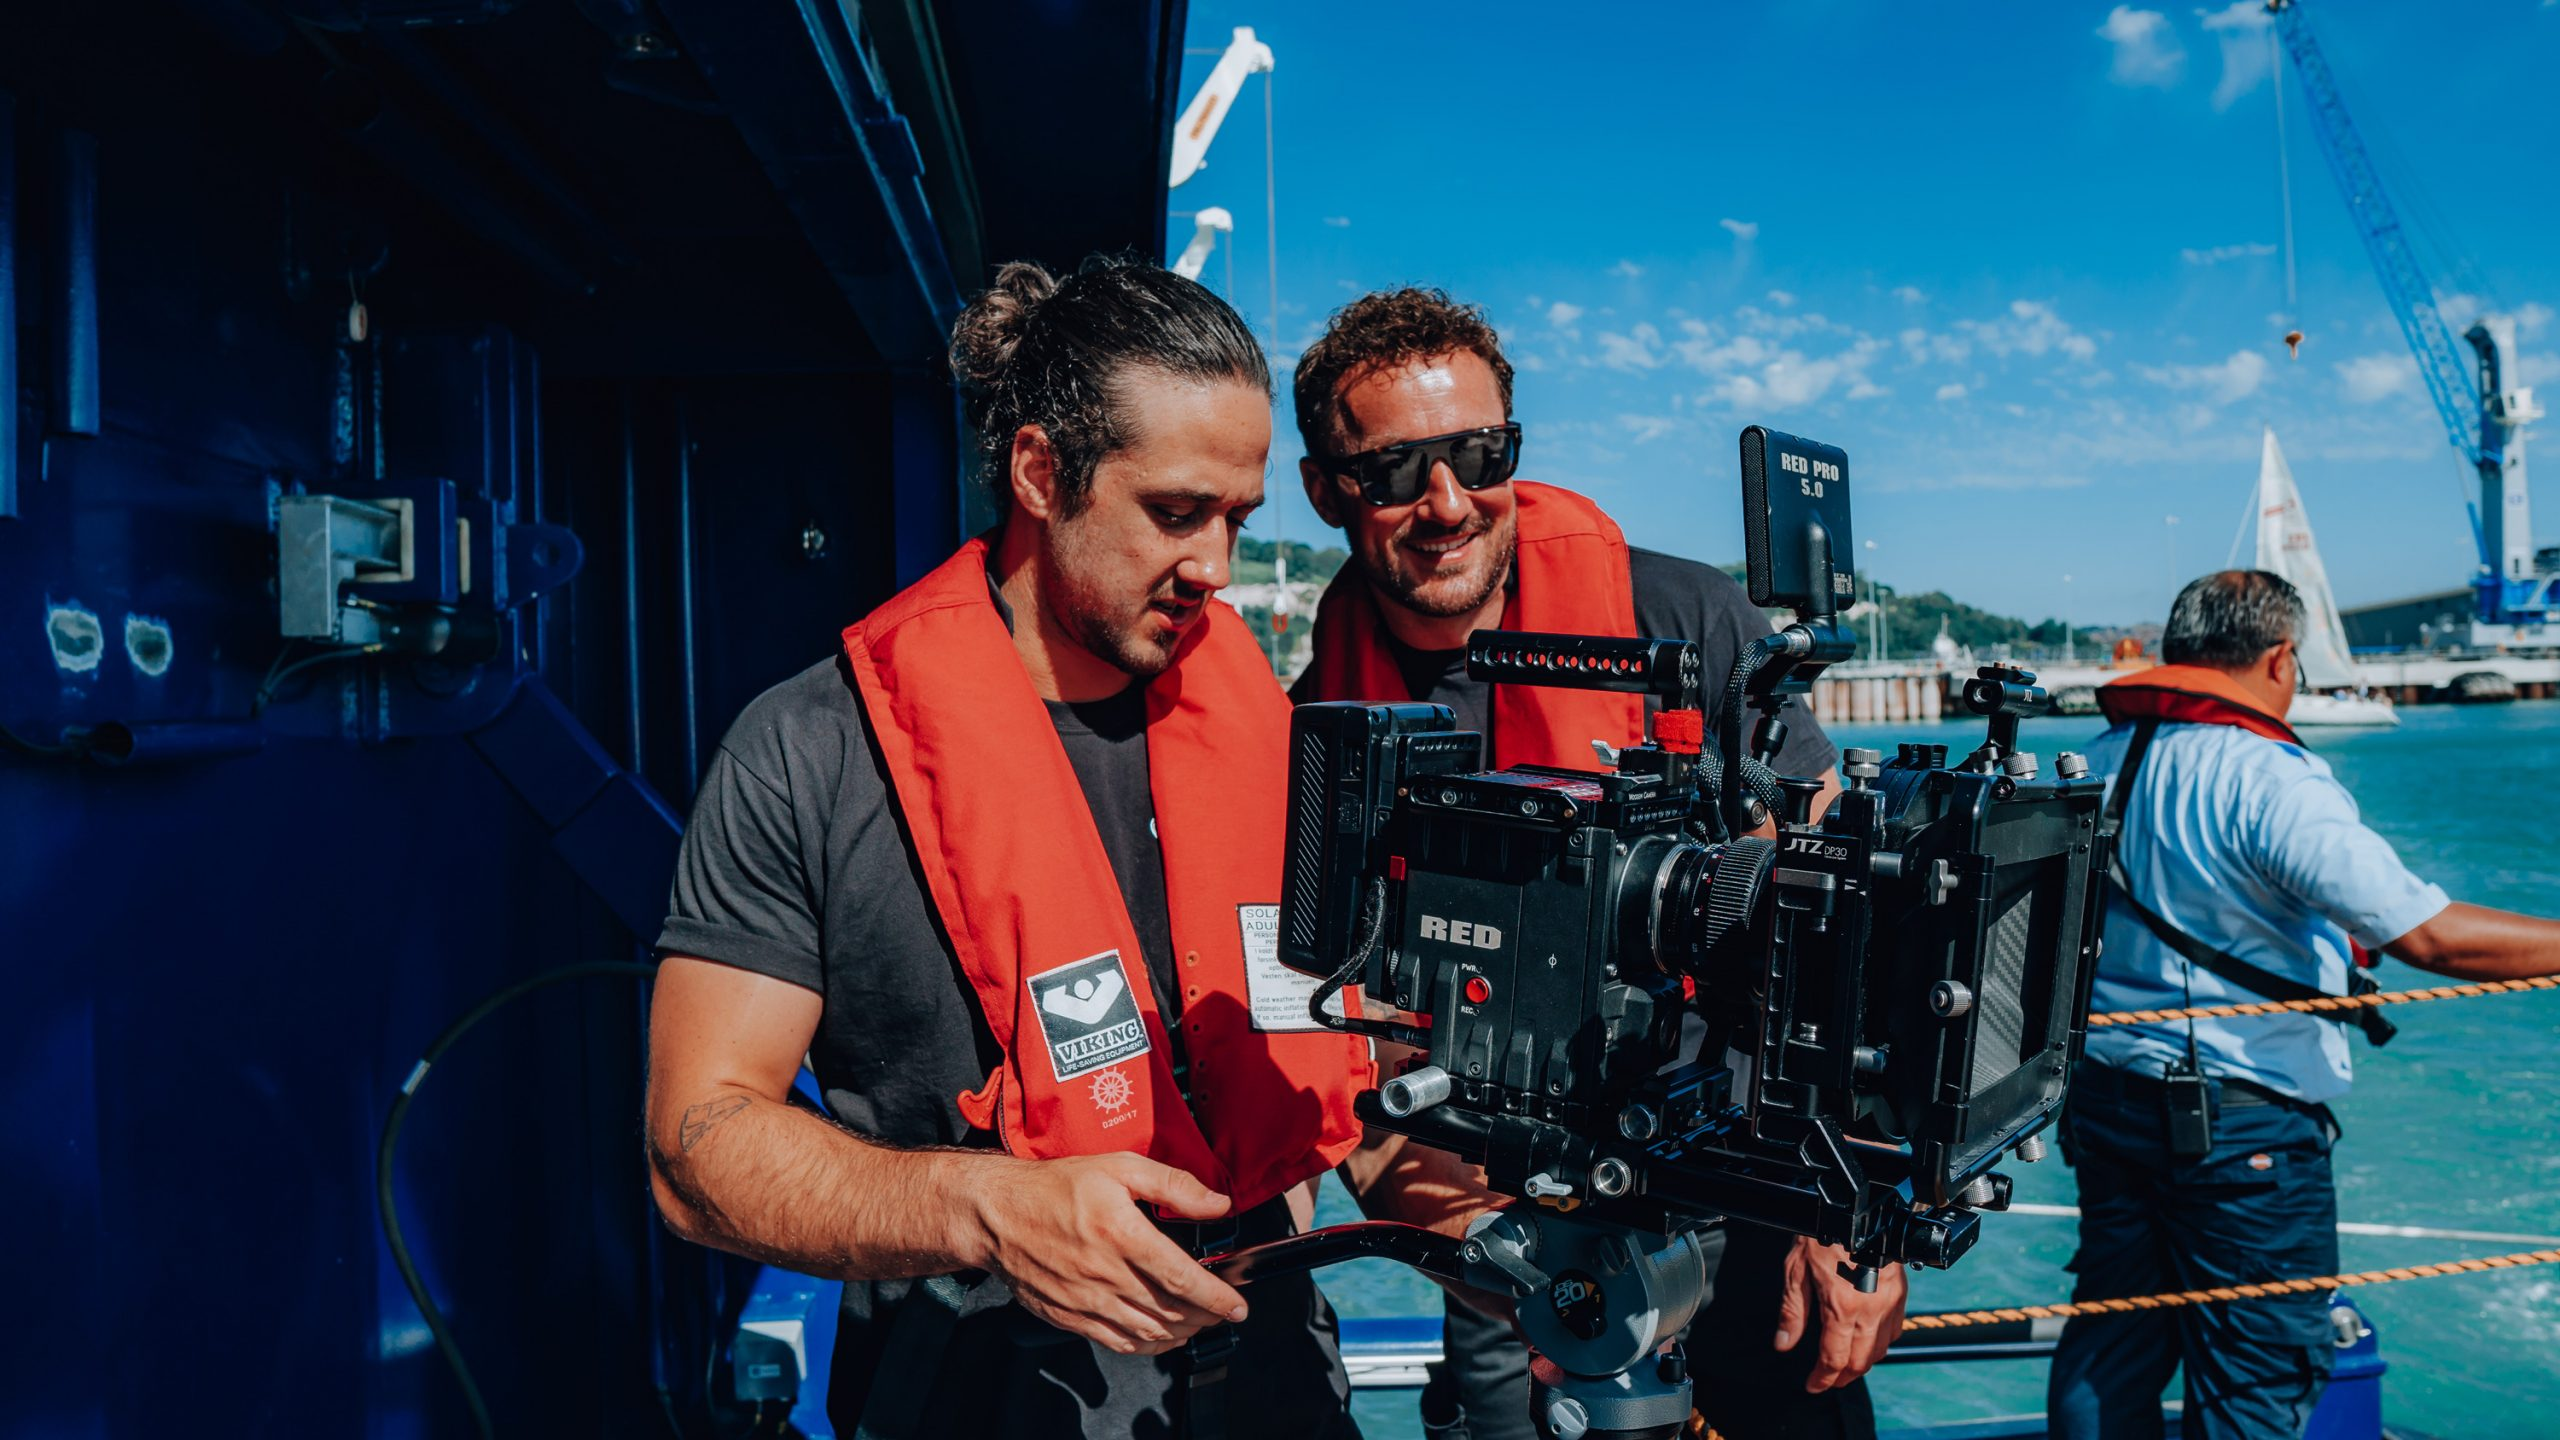 James Rostance directing filming a lifeboat